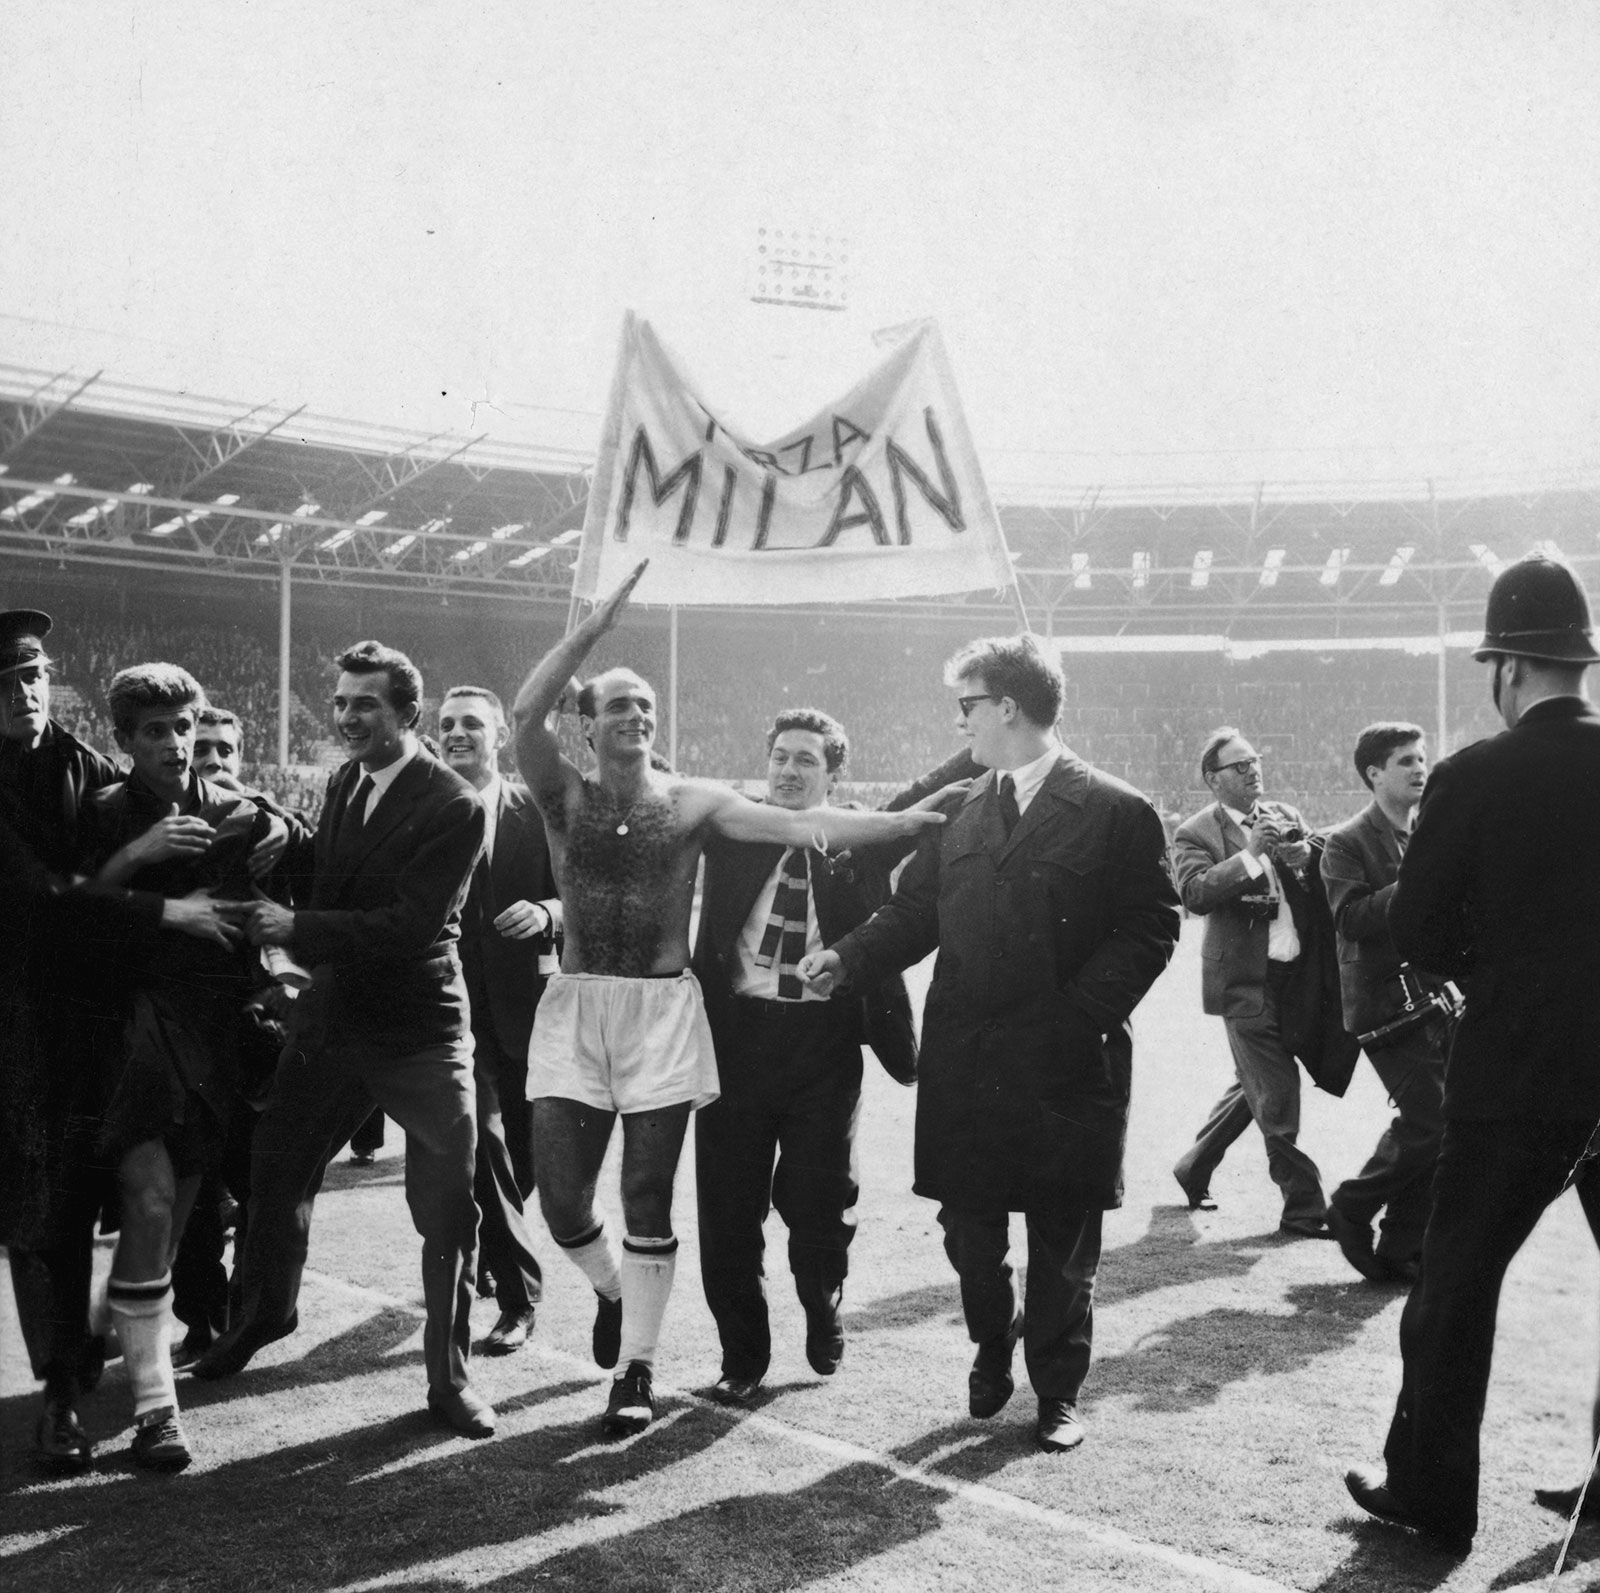 Milan players and fans celebrating their victory over Benfica in the European Cup Final at Wembley on May 22, 1963. (Photo by Evening Standard/Getty Images)